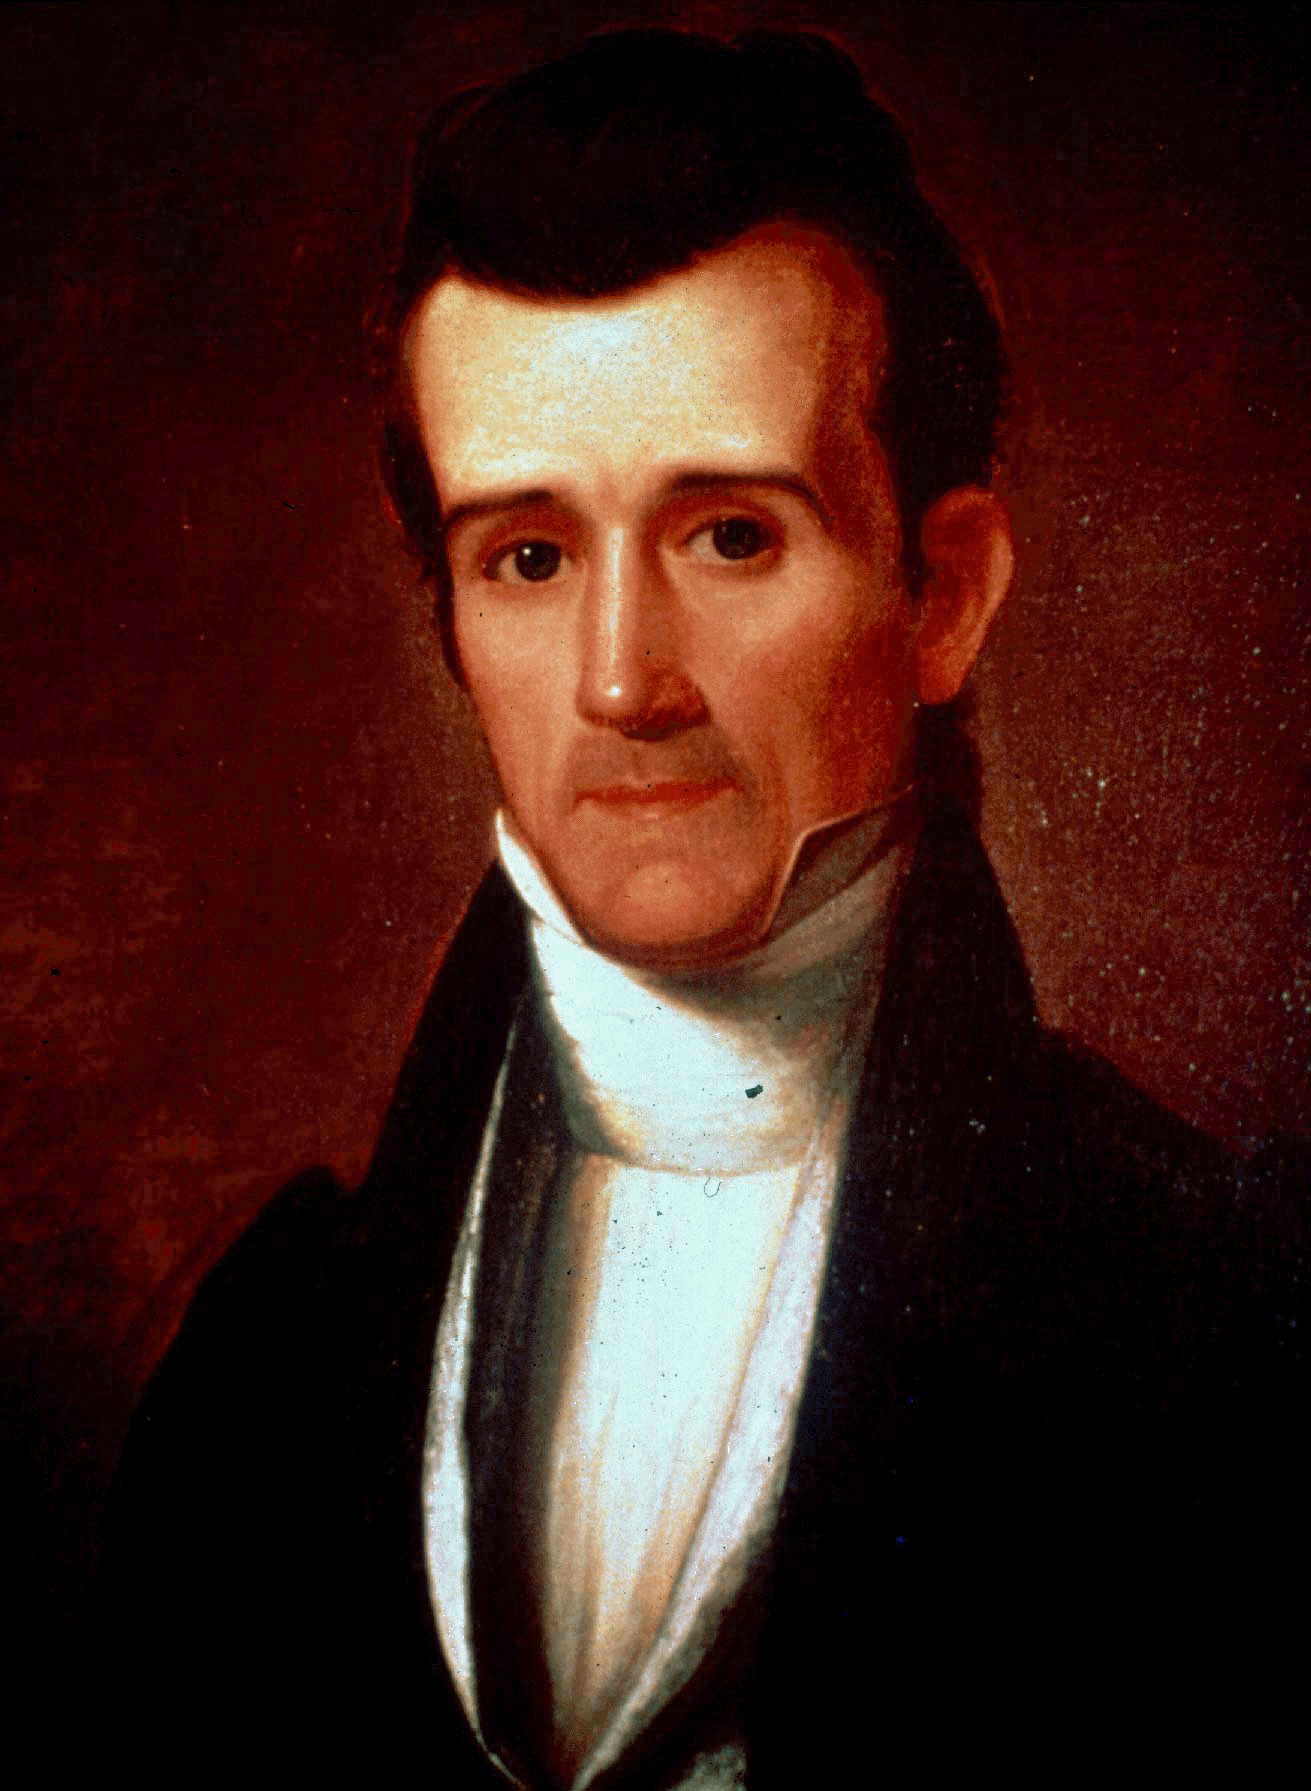 A portrait of James K. Polk.